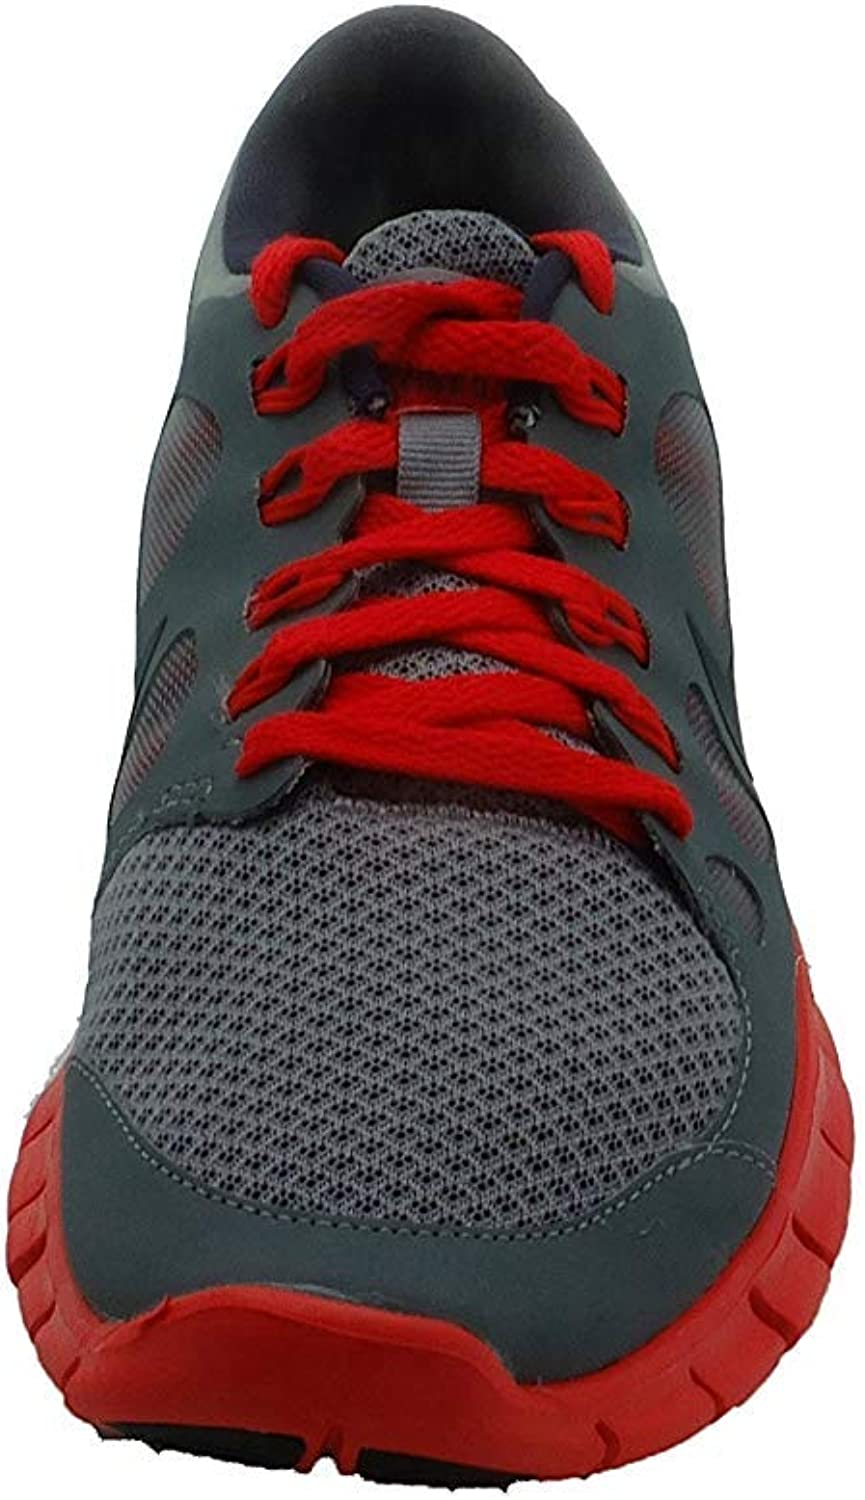 nike shoes red color